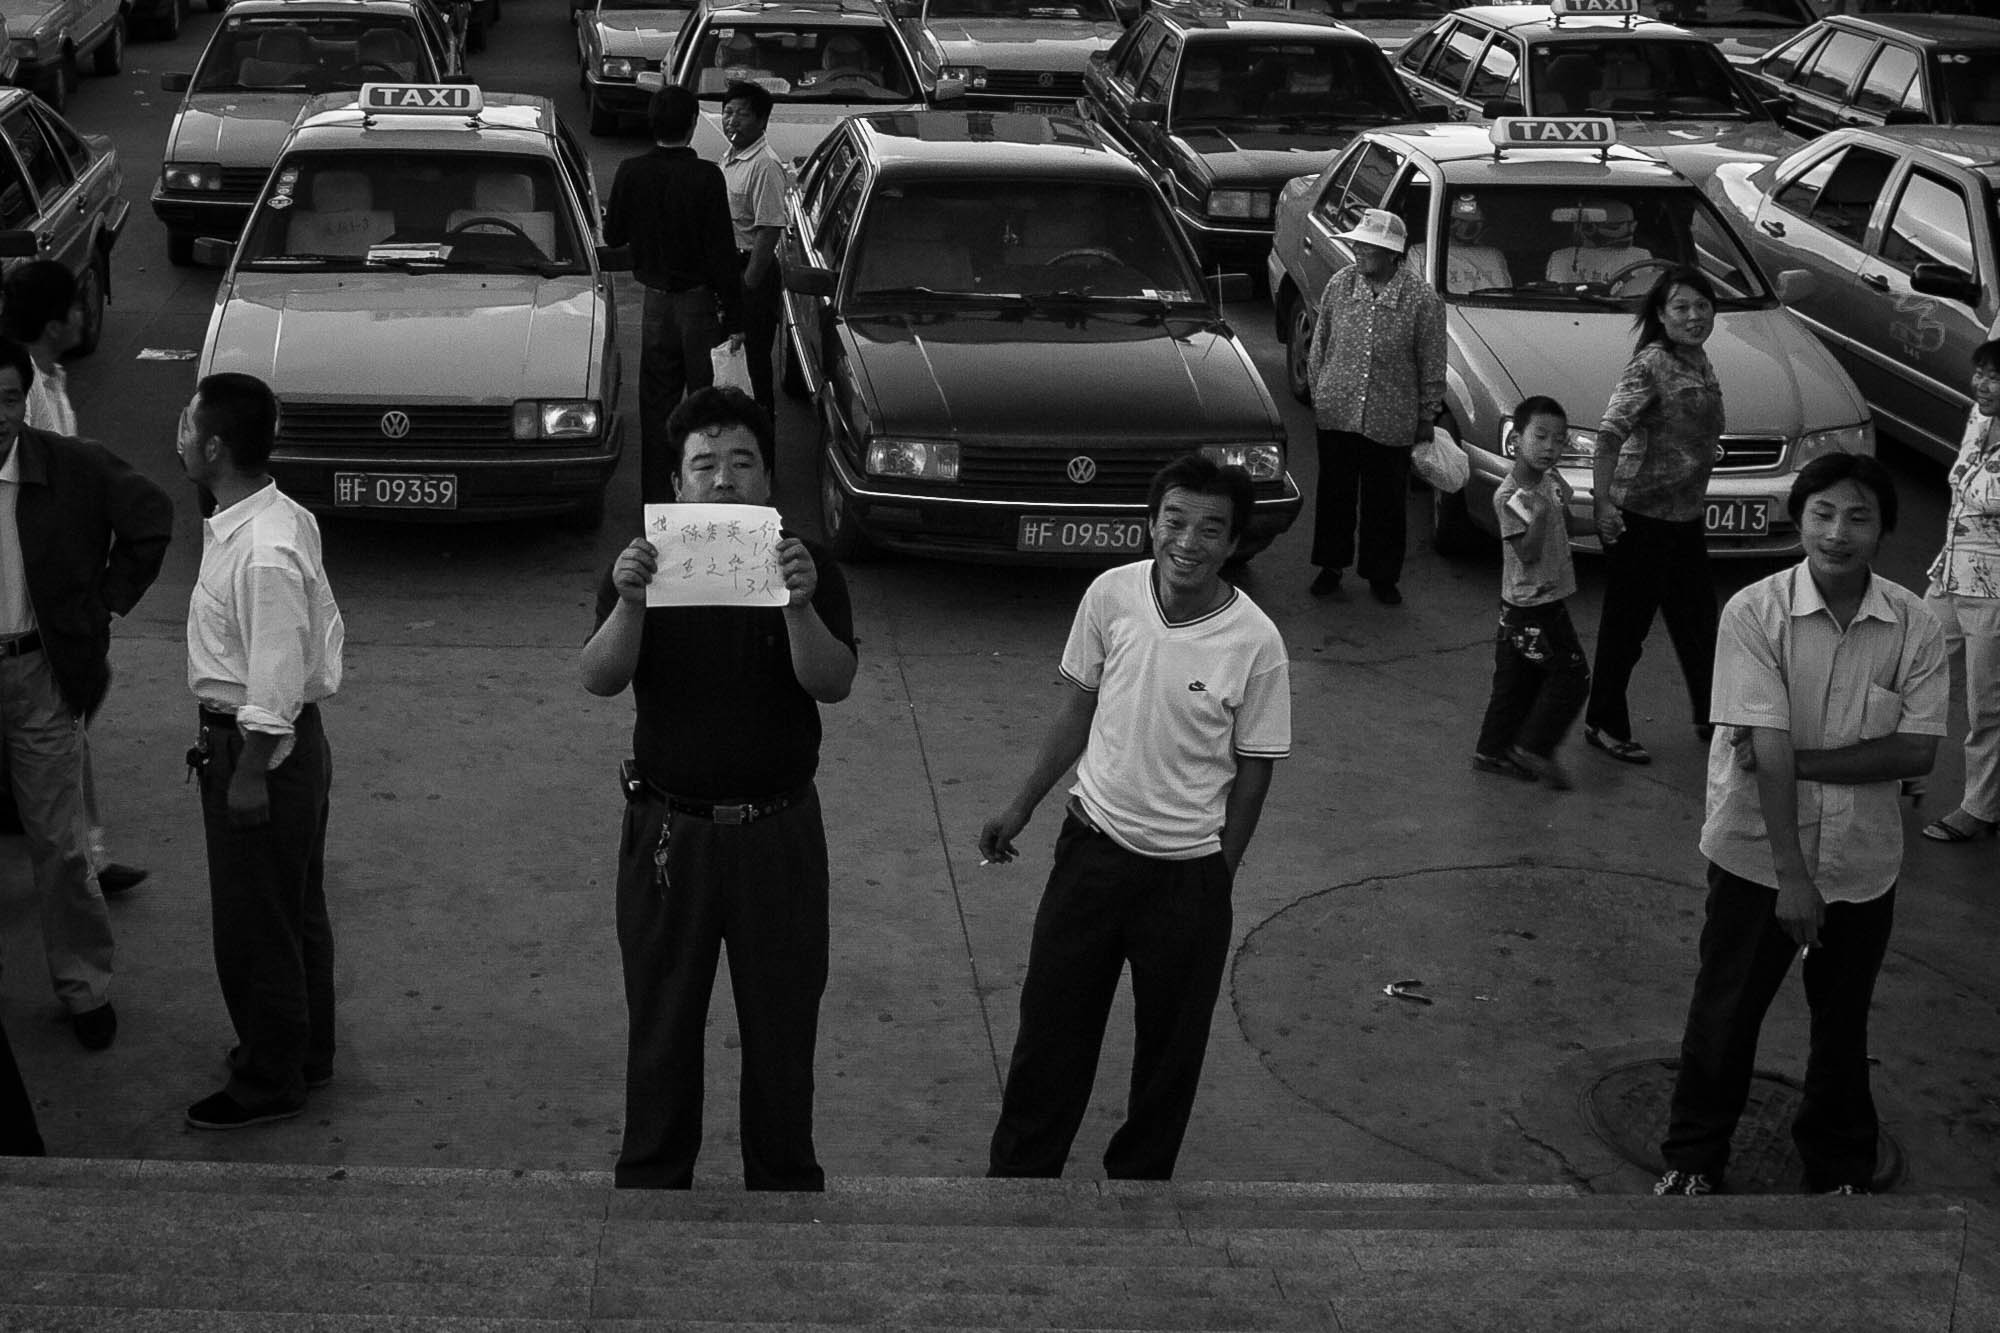 taxi drivers in 2006